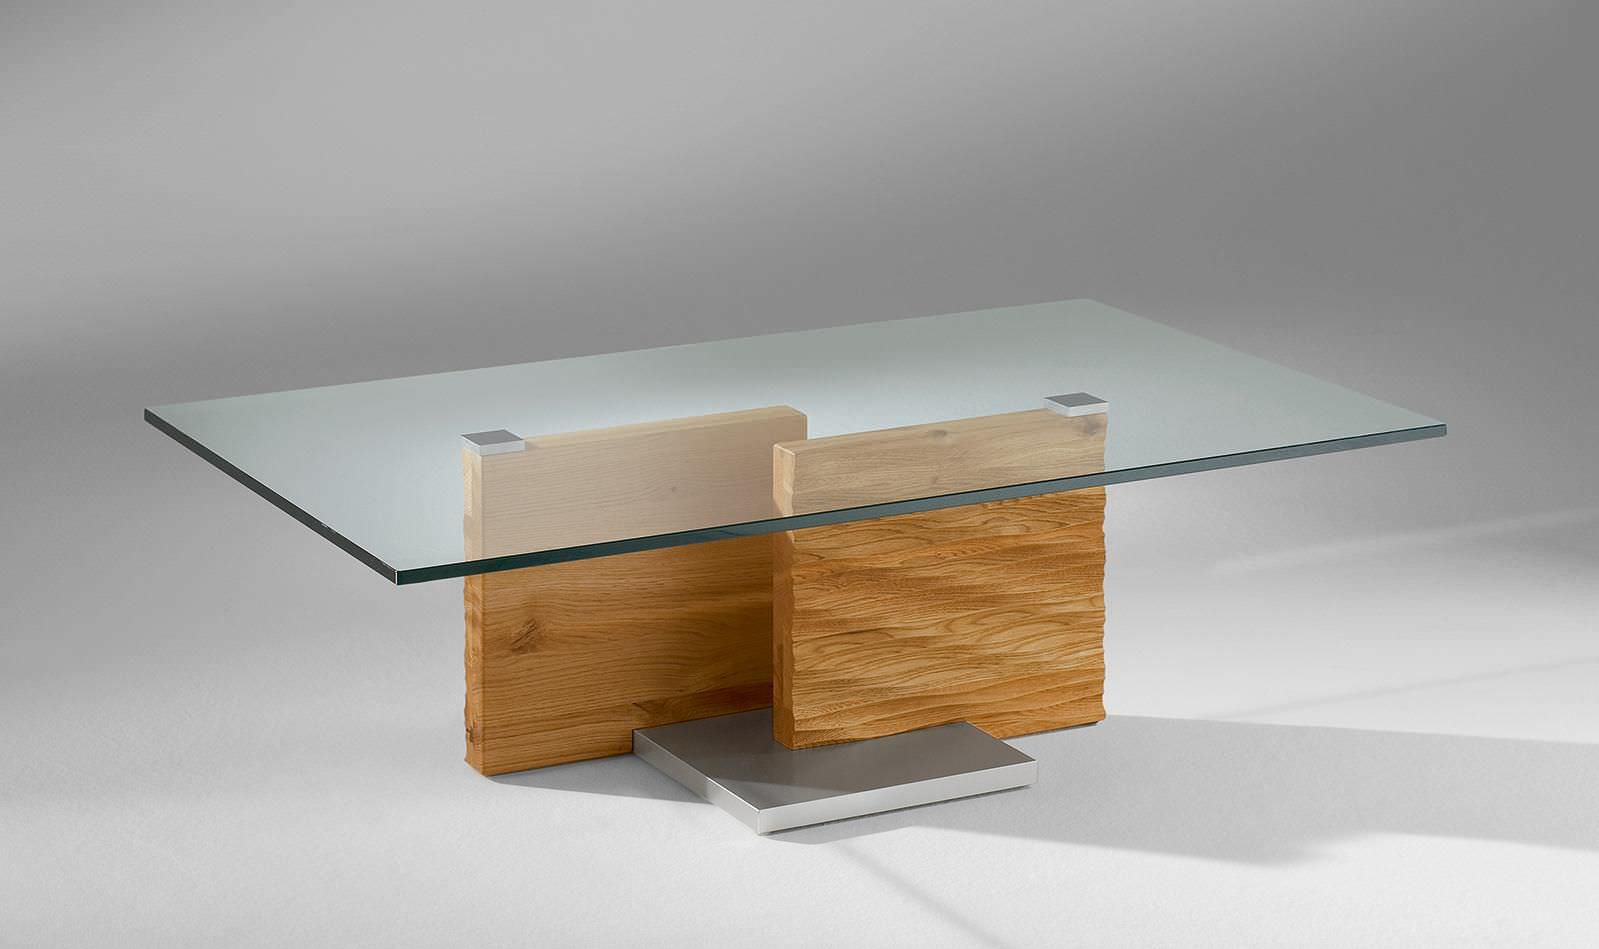 Table Basse Contemporaine 4435 Alfons Venjakob Gmbh Co Kg